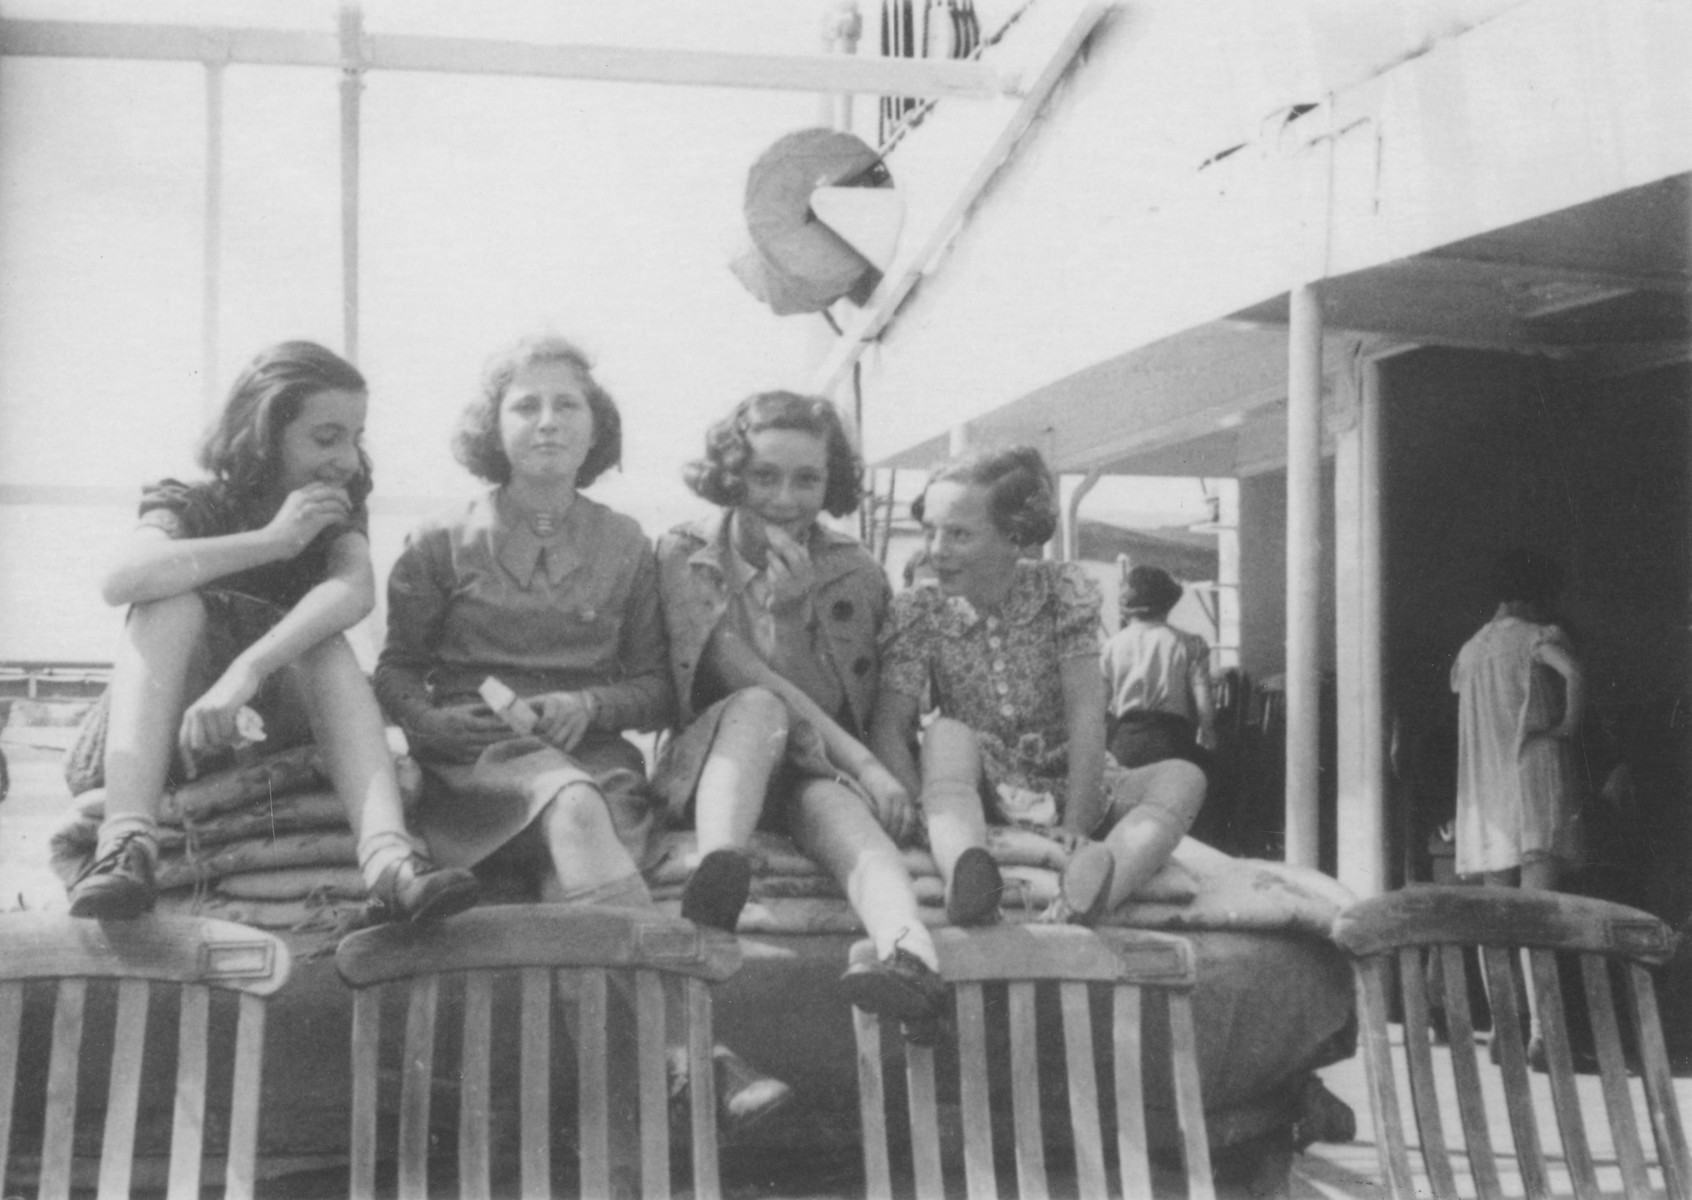 Four girls share a snack on the deck of the MS St. Louis.